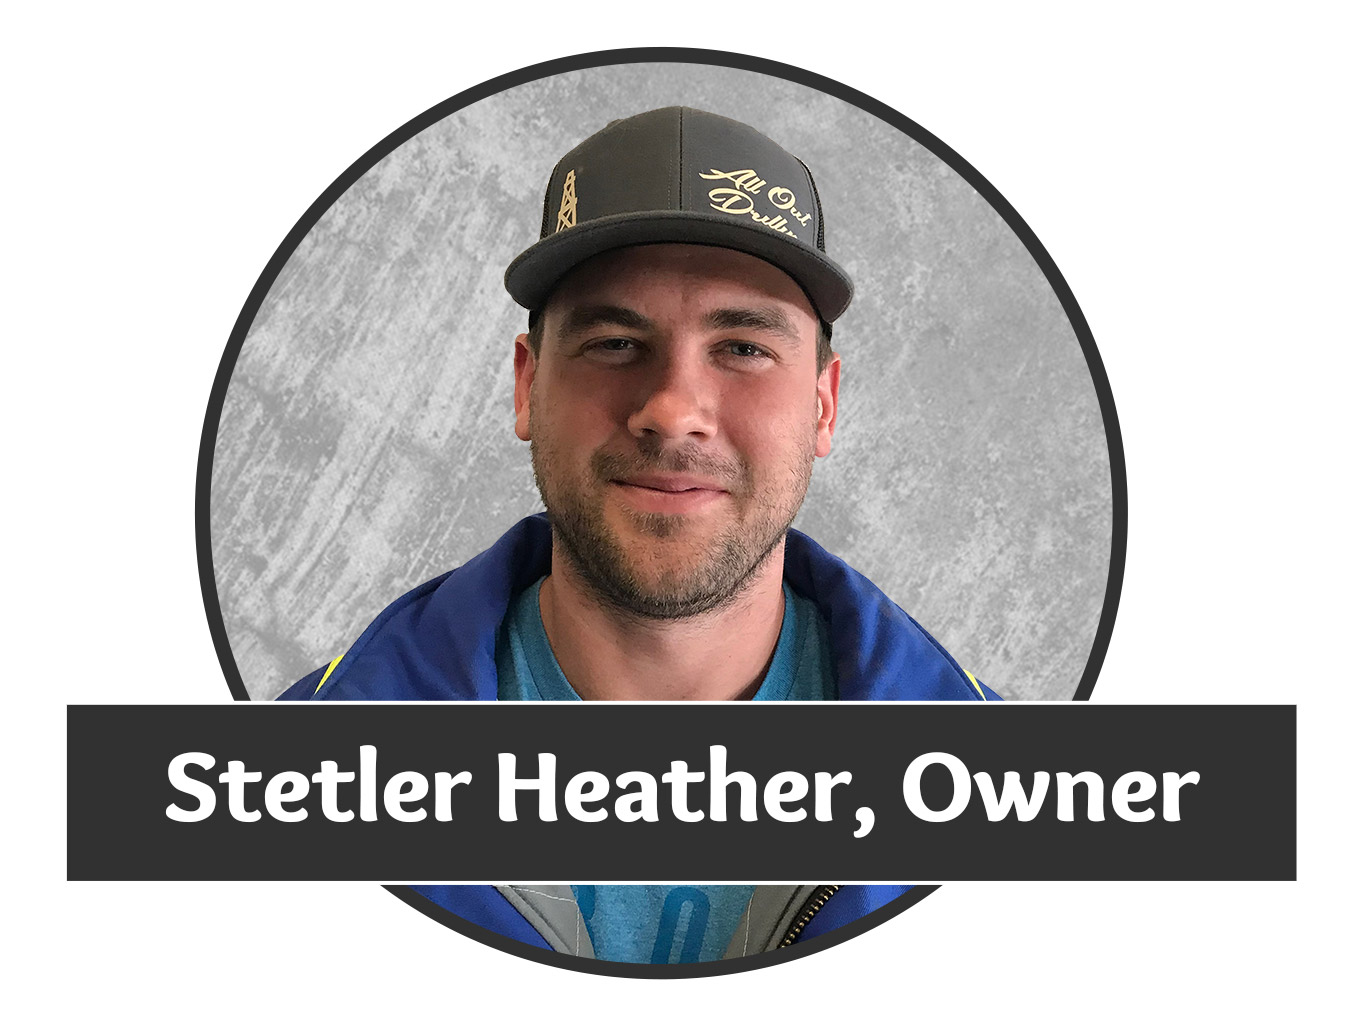 Headshot photo of Stetler Heather, one of the owners for Saskatchewan's superior water well drilling company.